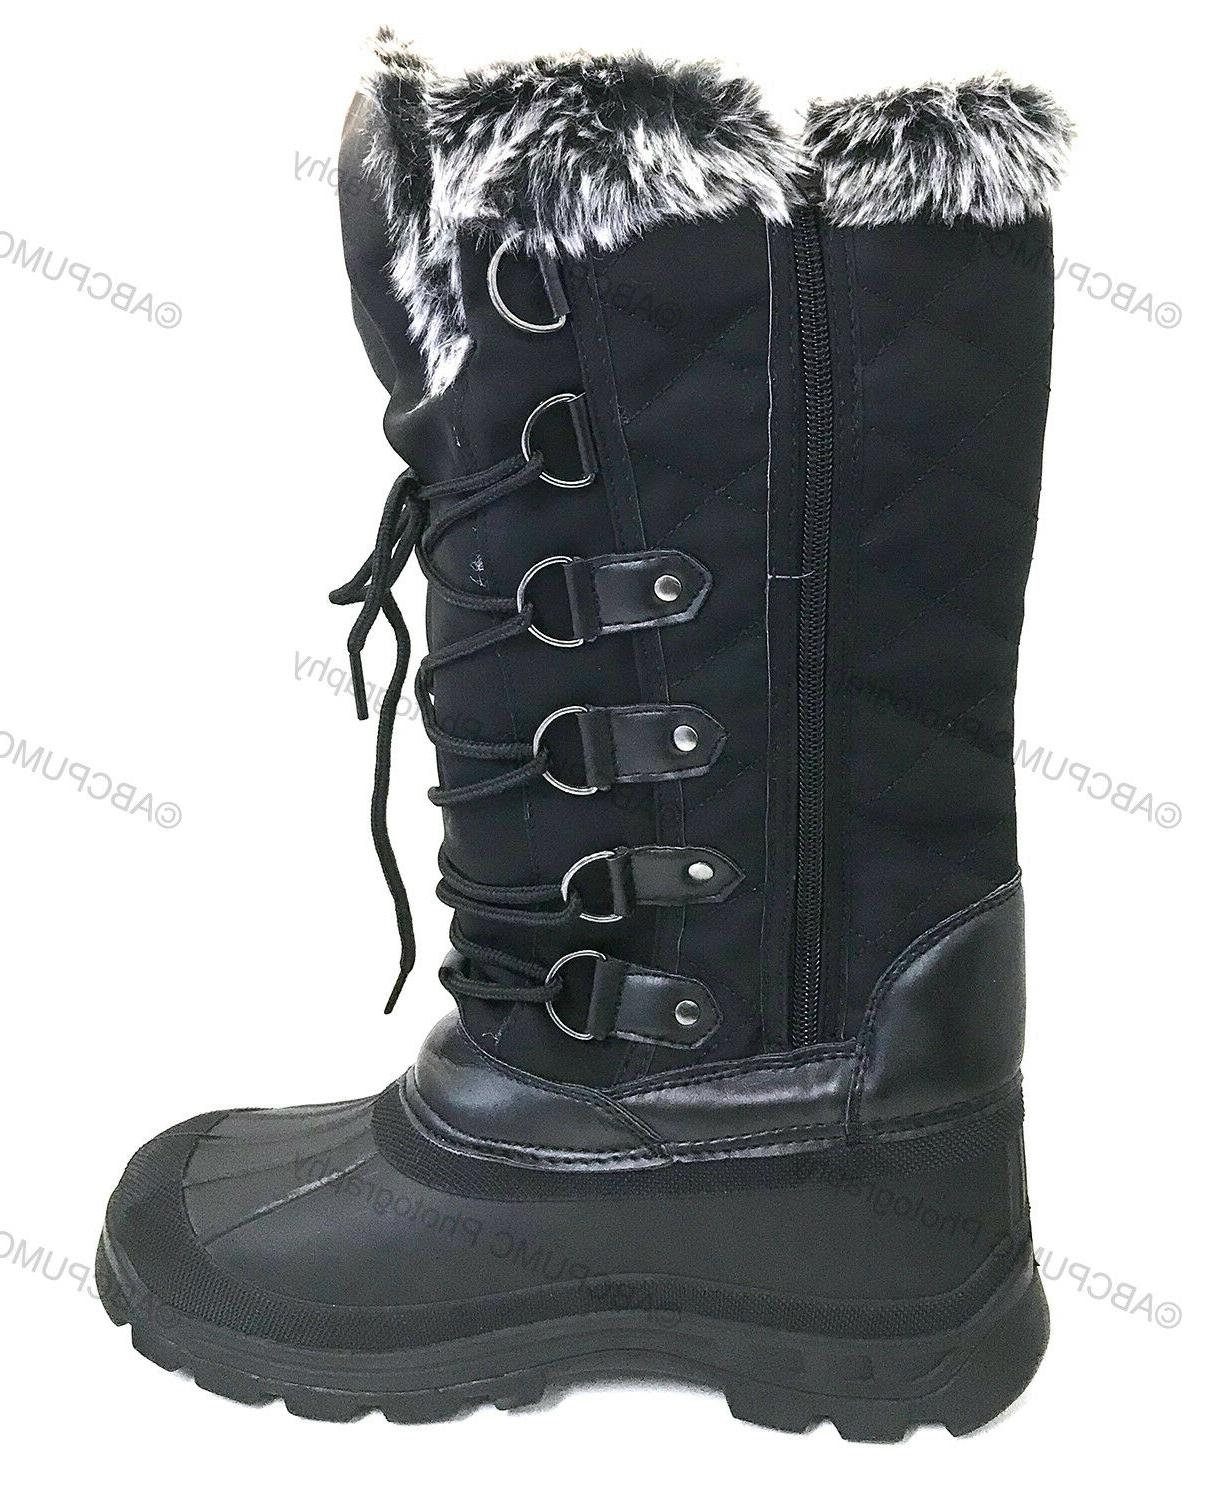 Brand Women's Boots Warm Insulated Snow